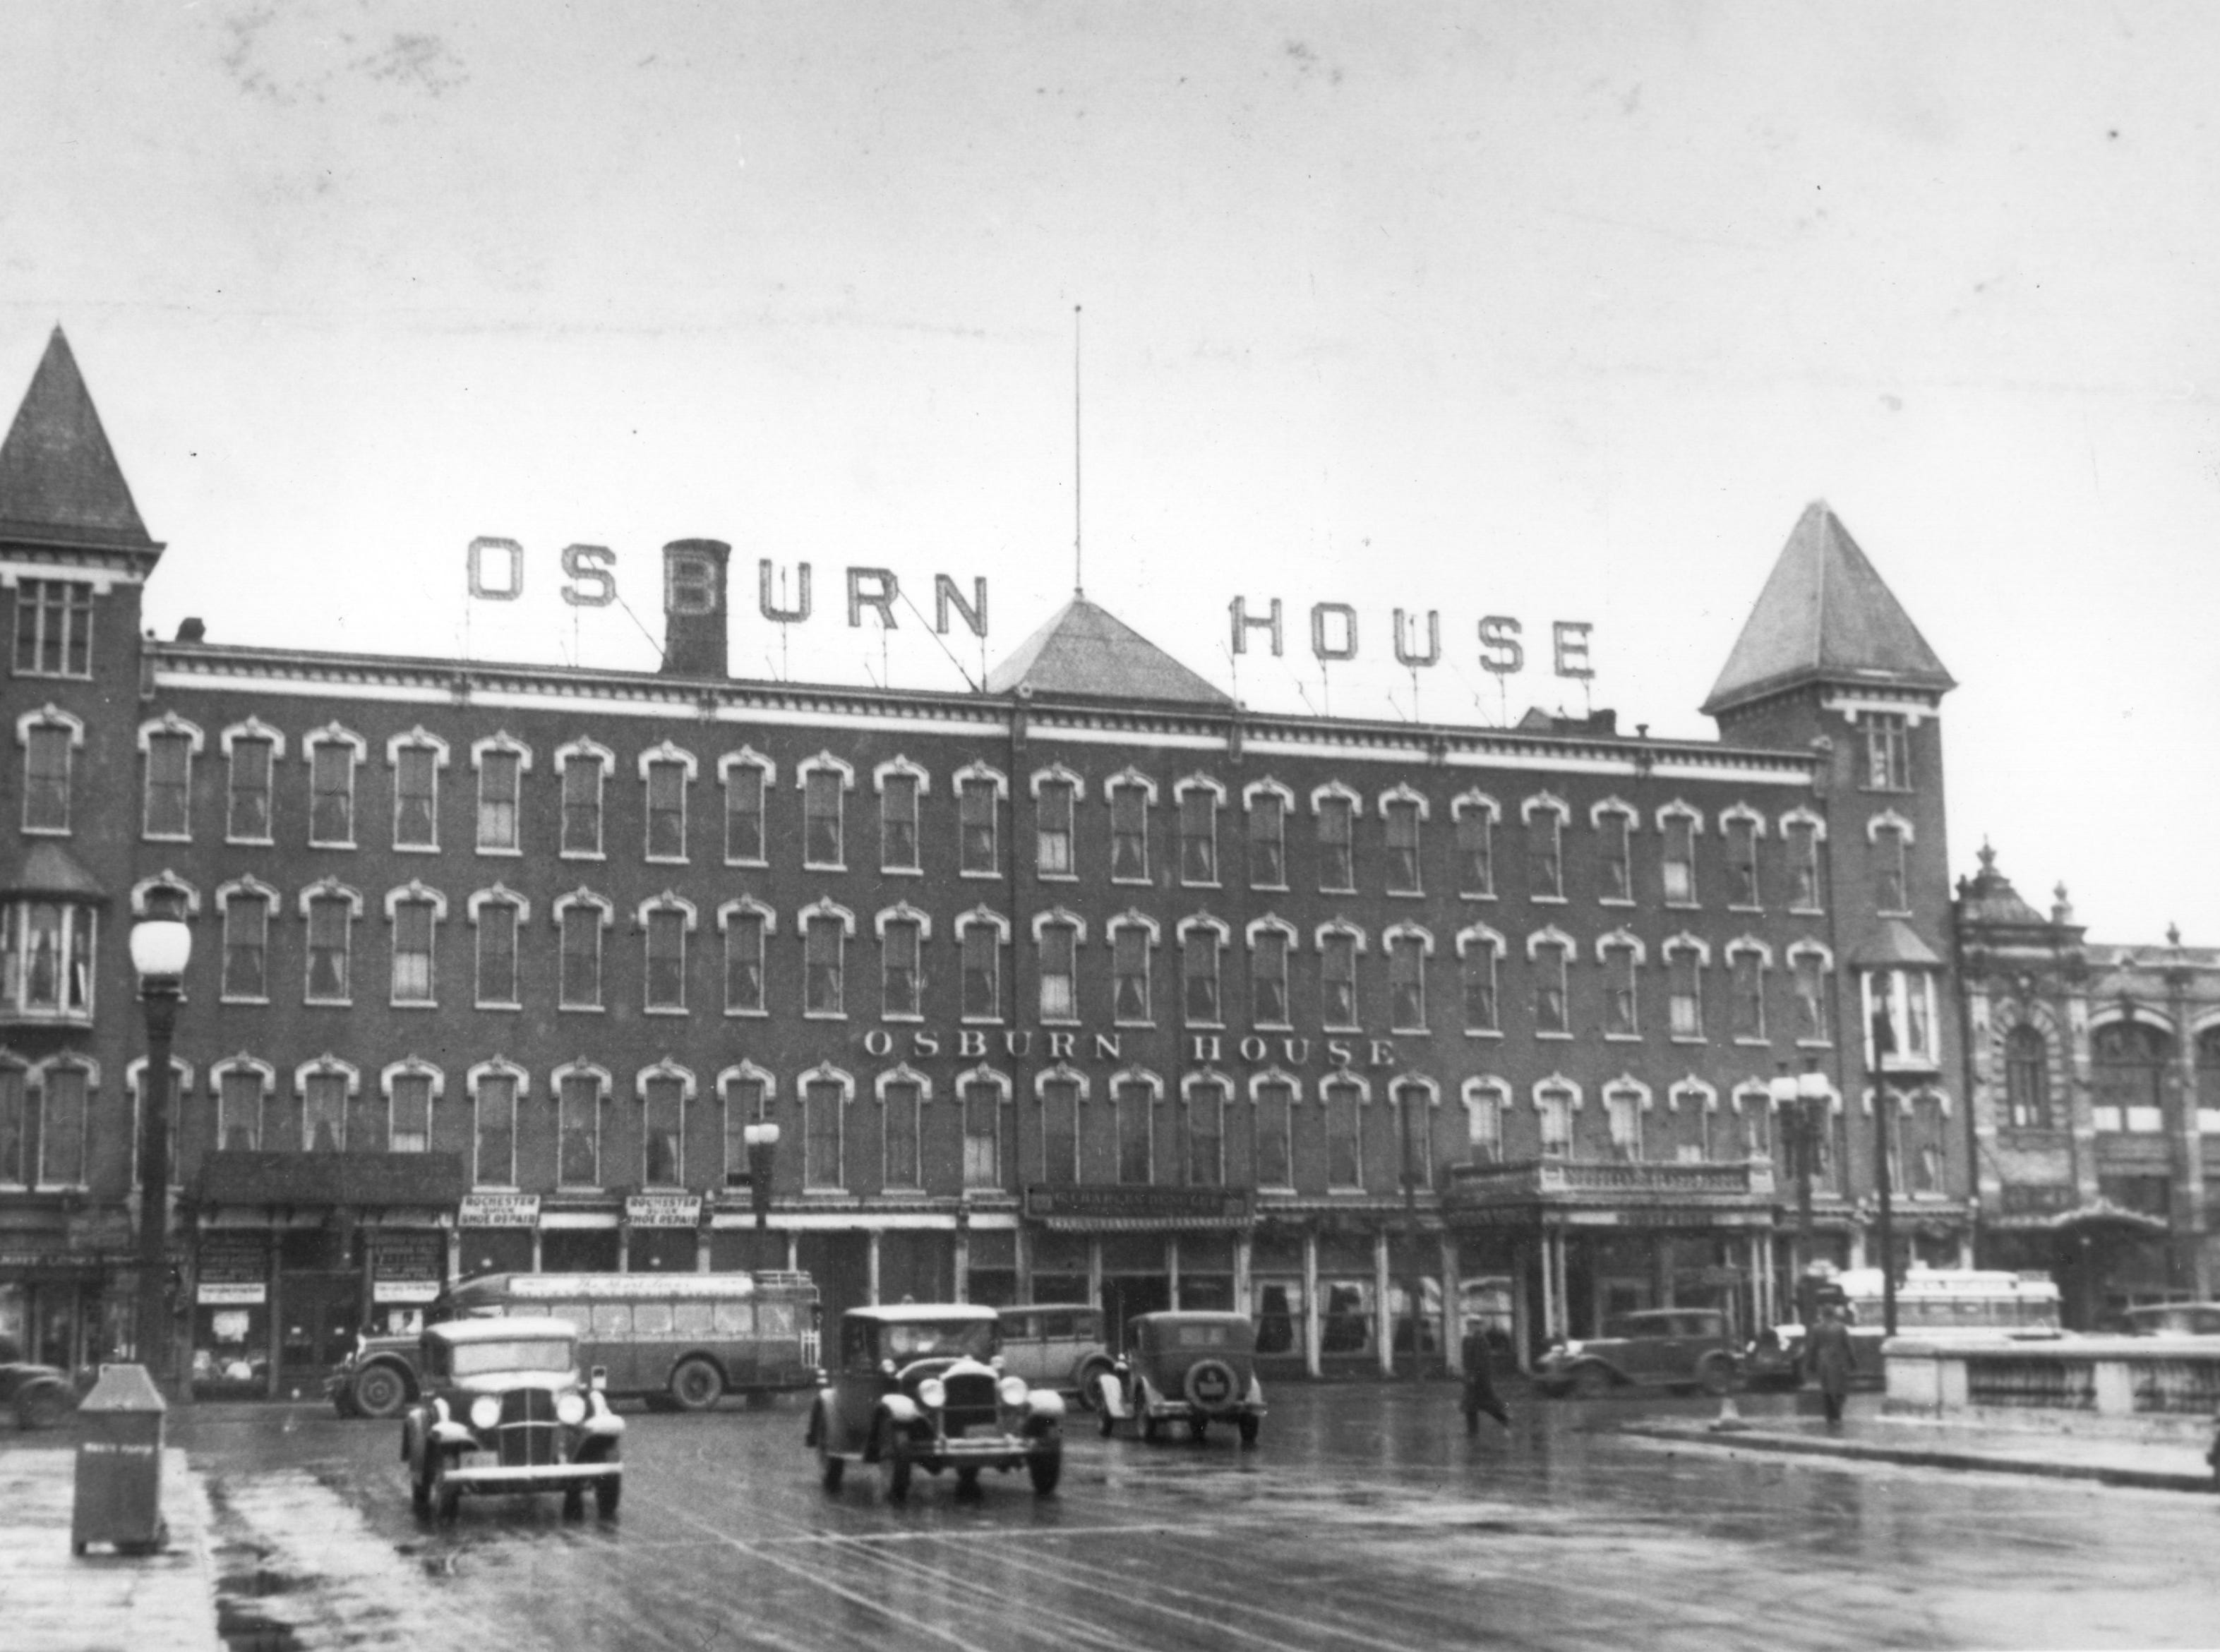 The Osburn House was the first real luxury hotel in Rochester, shown here in the 1920s or 30s. The hotel spanned across Broad Street at South Avenue. It was torn down in 1959.